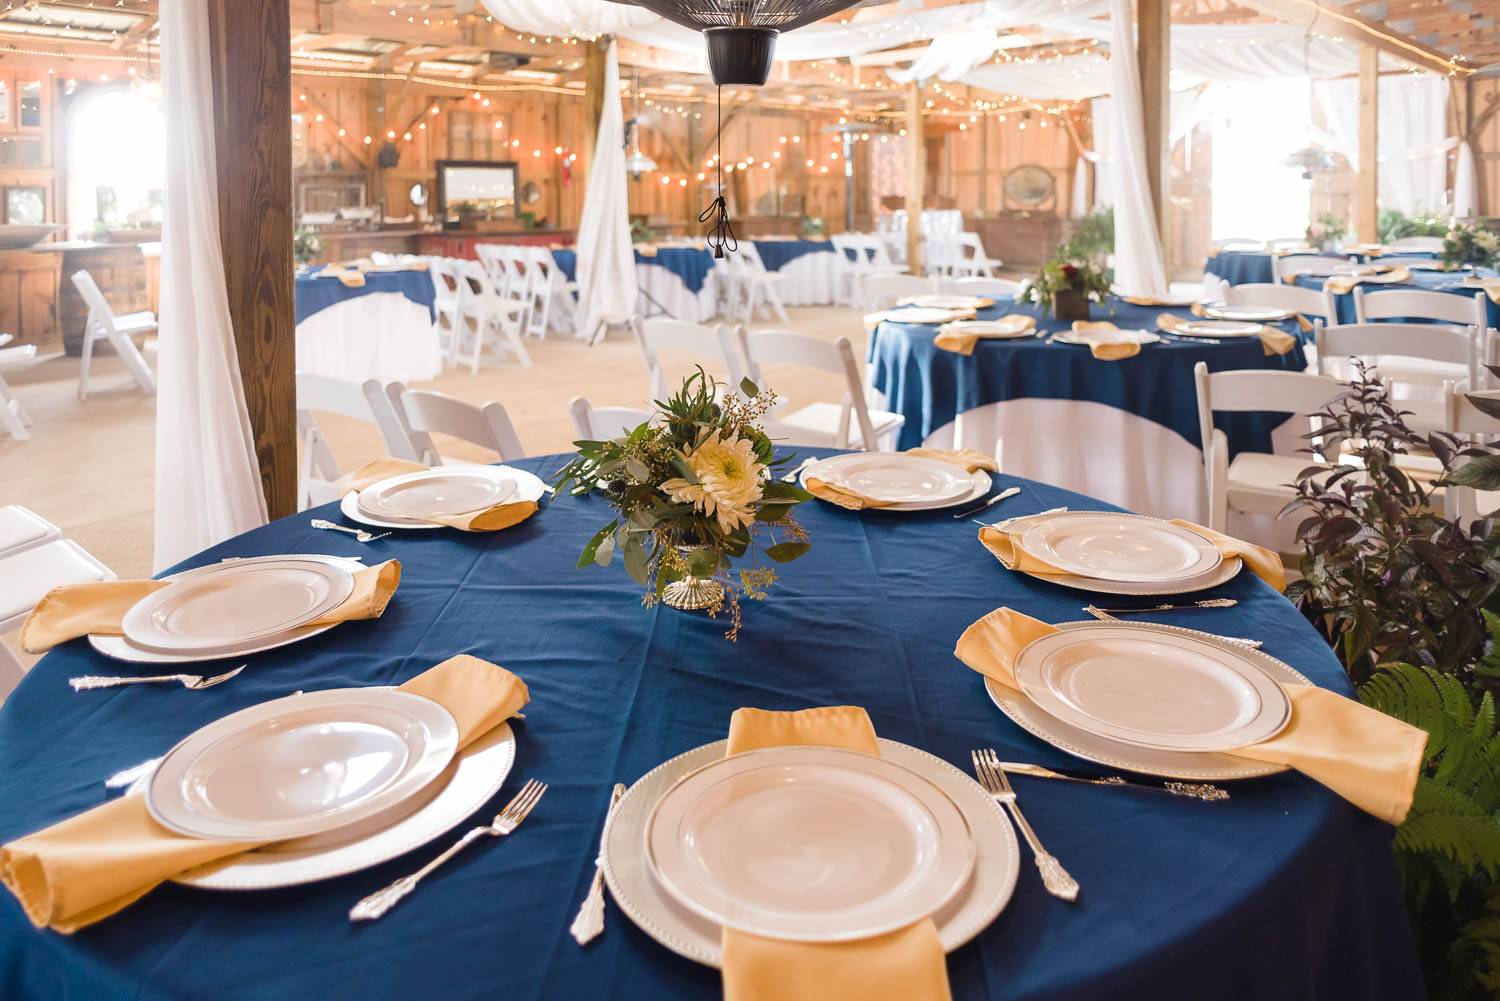 table settings in navy blue and silver chargers.